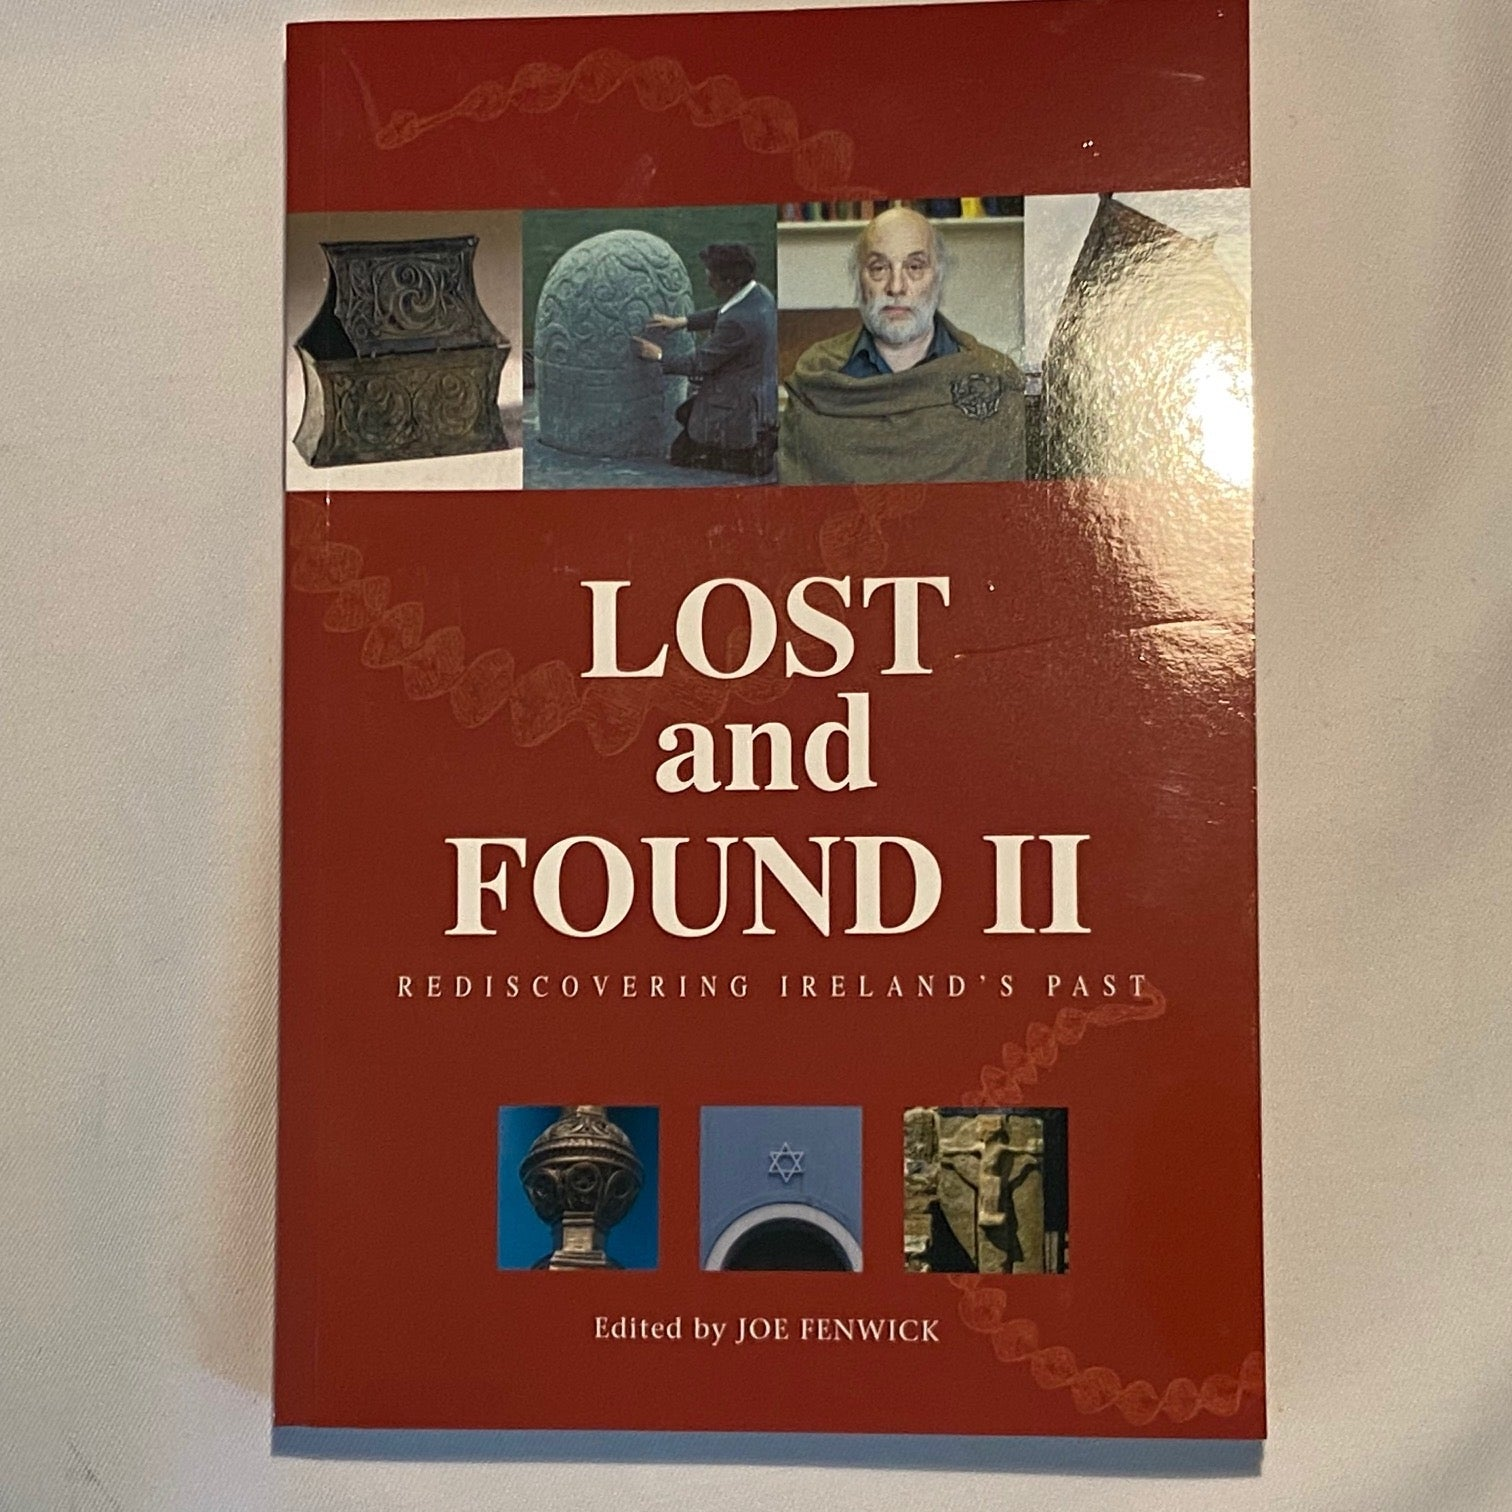 Image of Lost and Found II